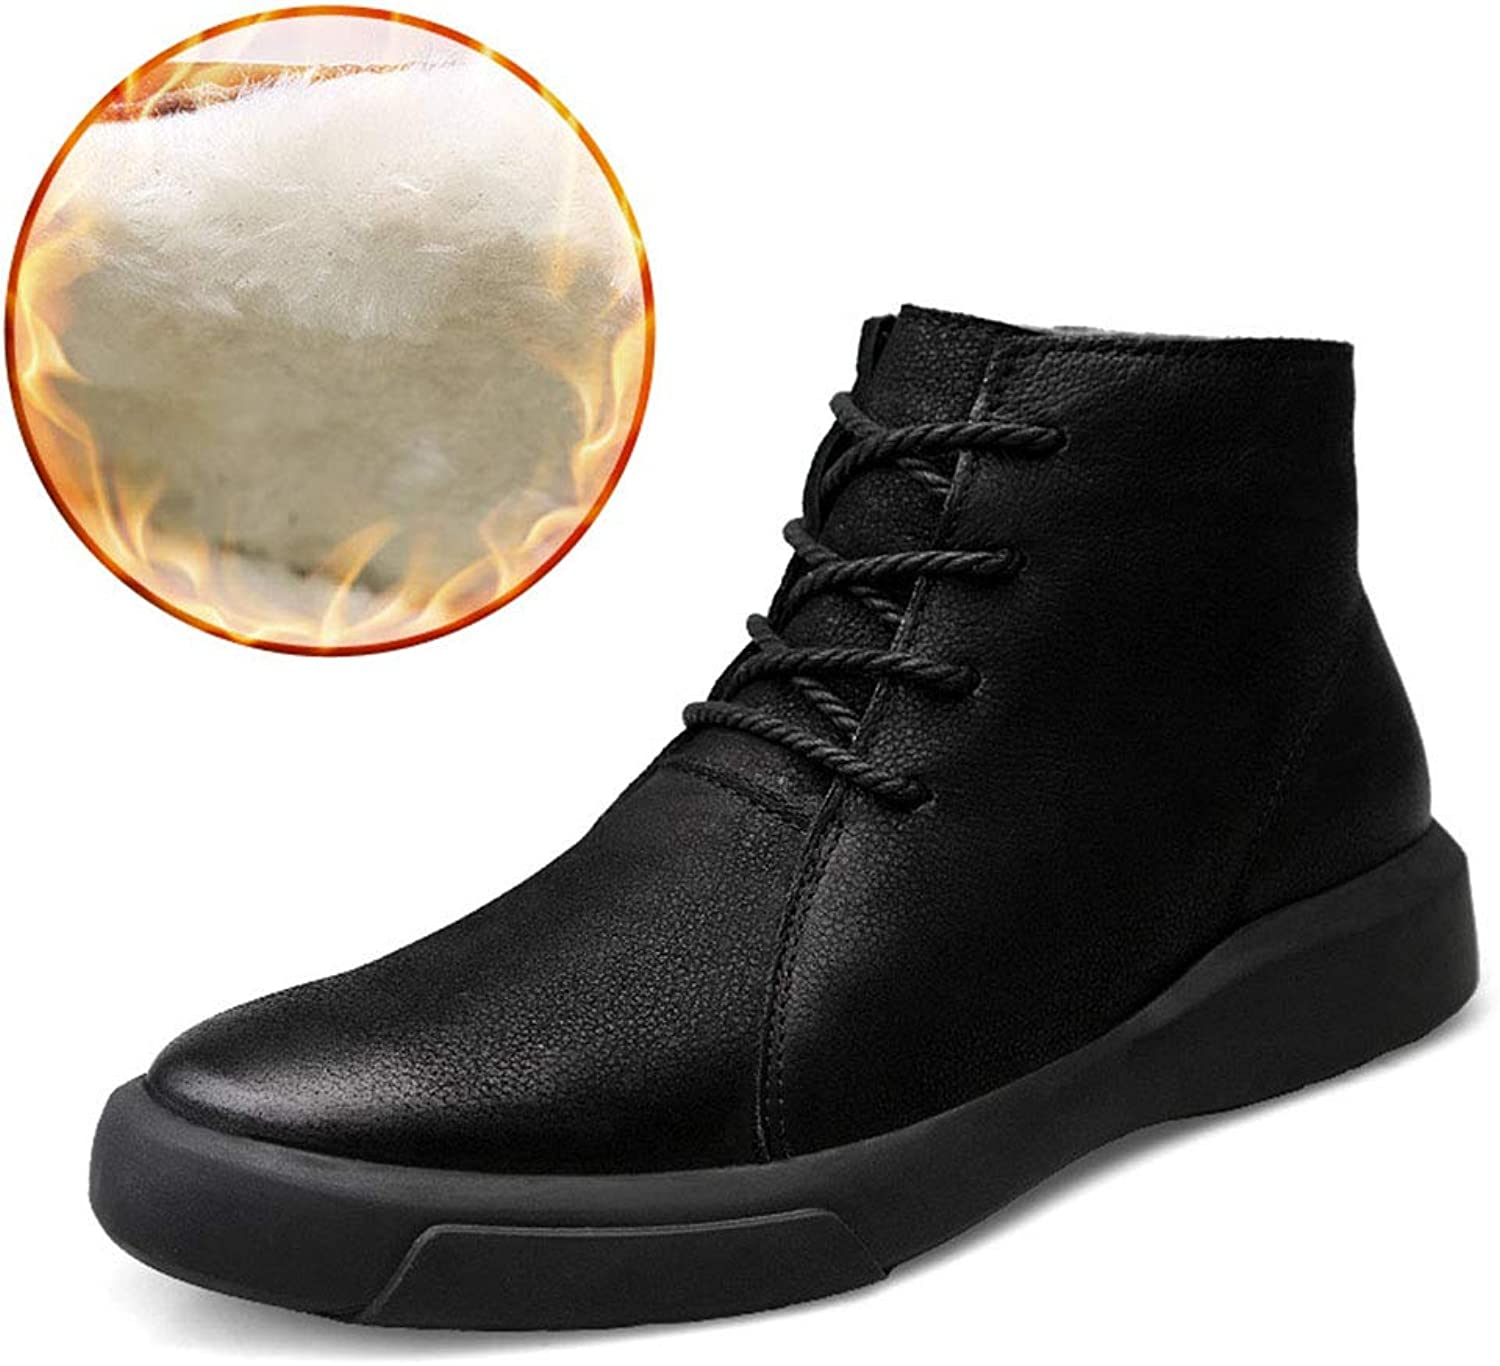 Men Tide shoes Spring And Summer Thin Section Business Men's shoes Men's Boots Chelsea Boots Autumn And Winter Large Size Martin Boots Outdoor Leisure Short Tube Cowhide Plus Velvet Keep Warm